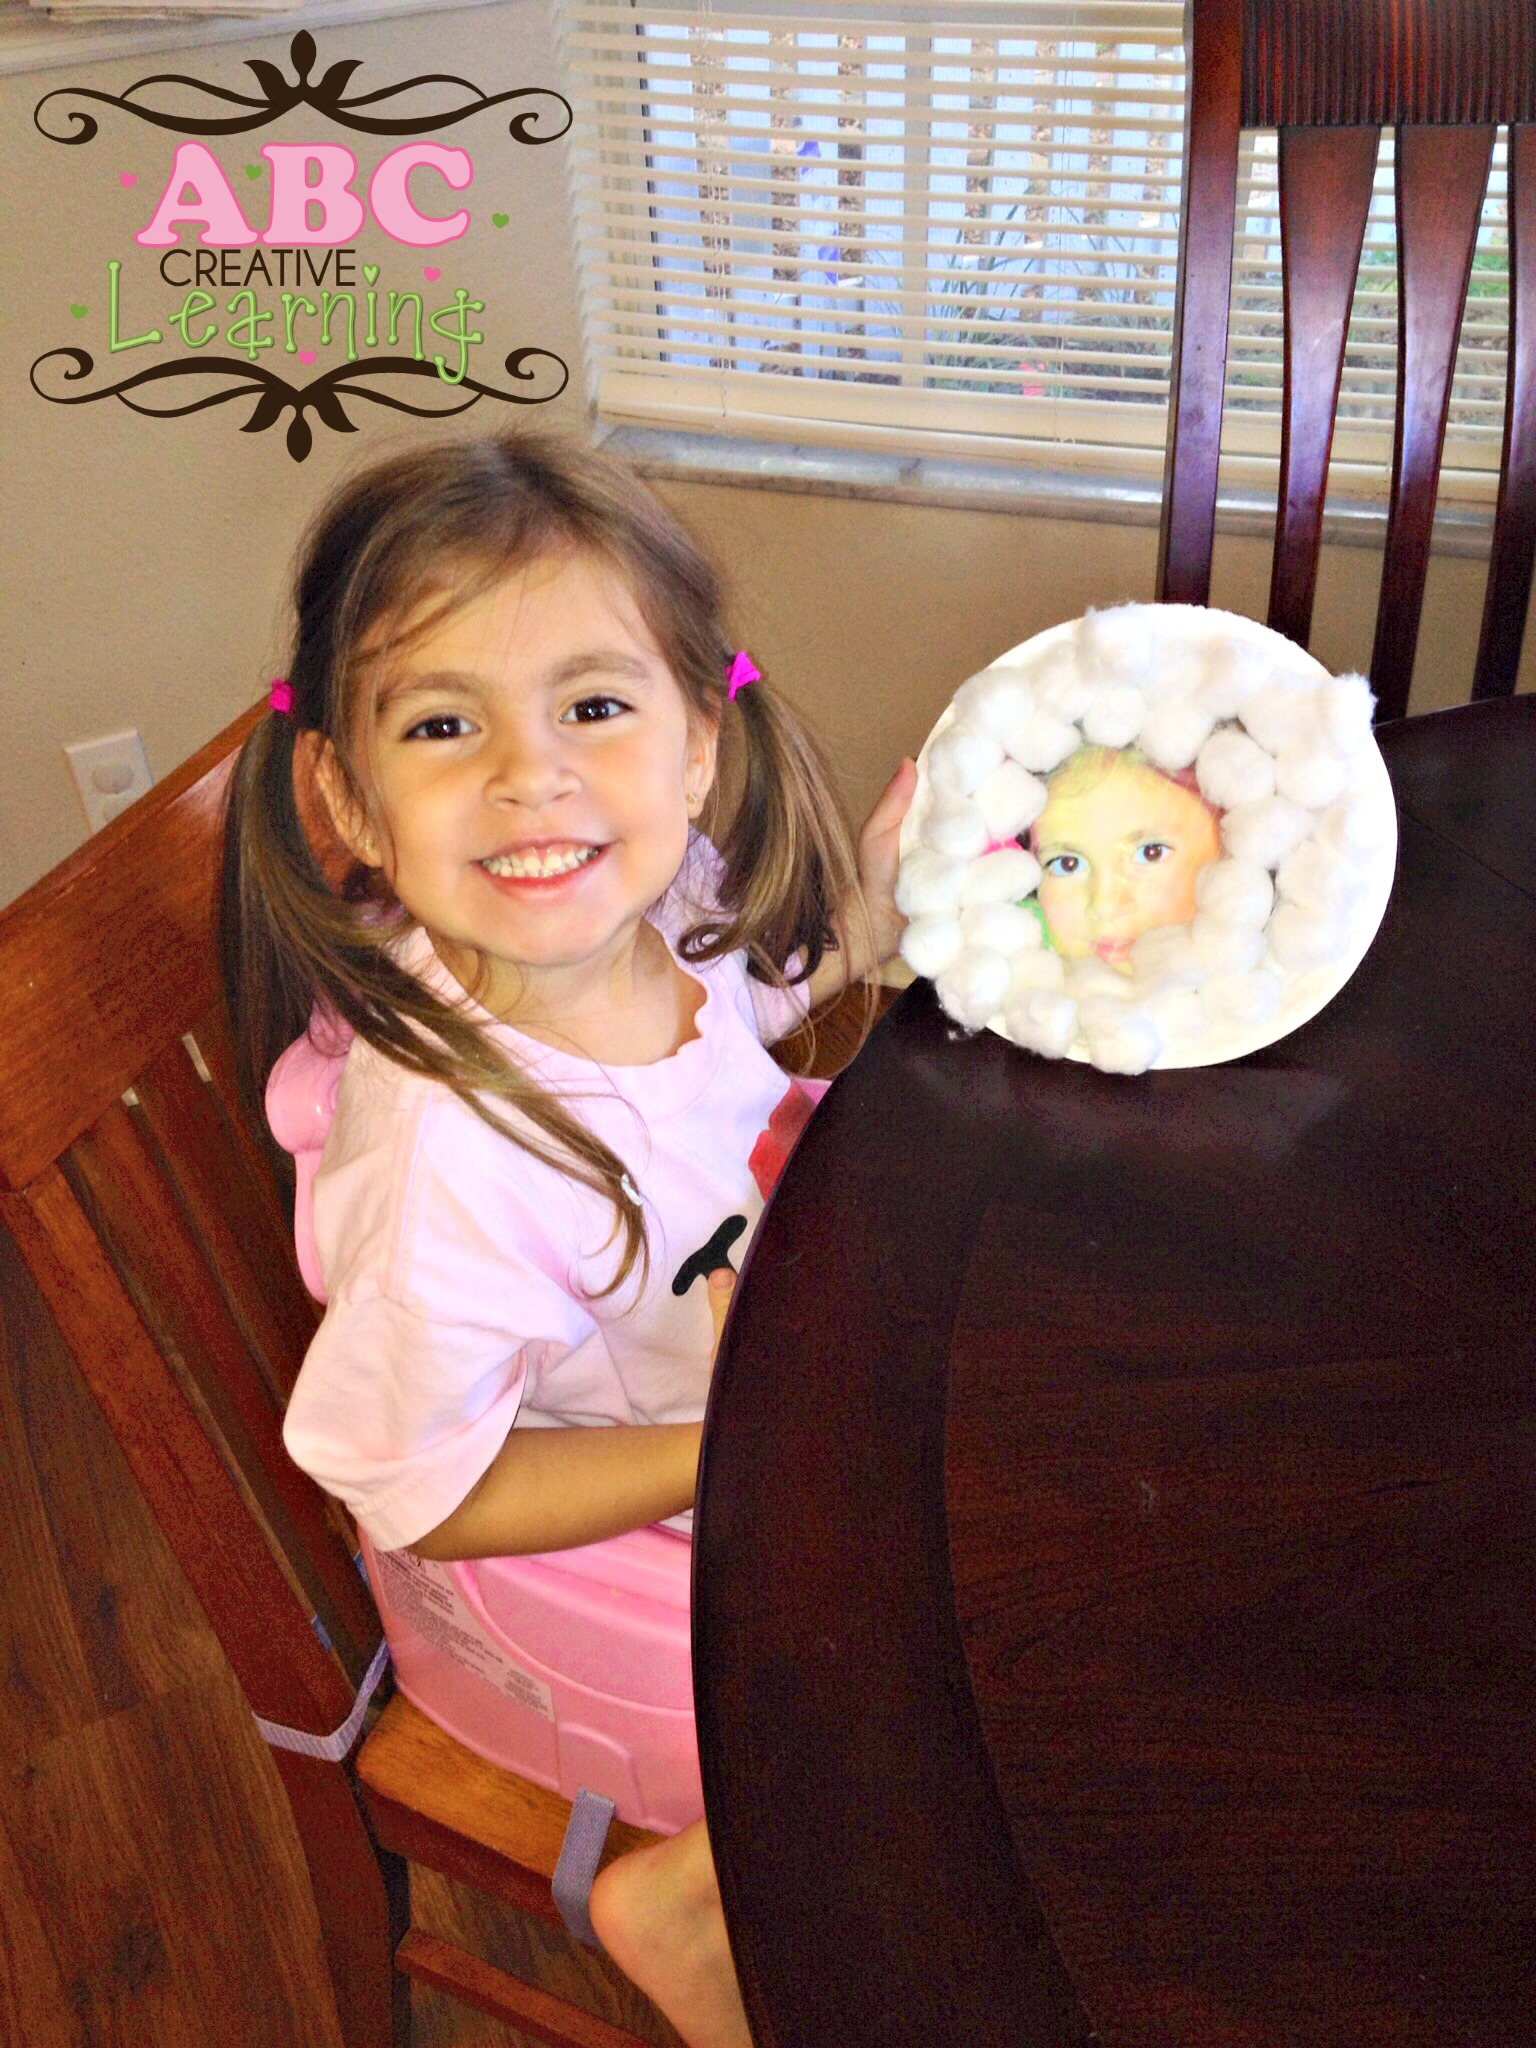 Letter E Arts and Crafts for Preschoolers and Toddlers